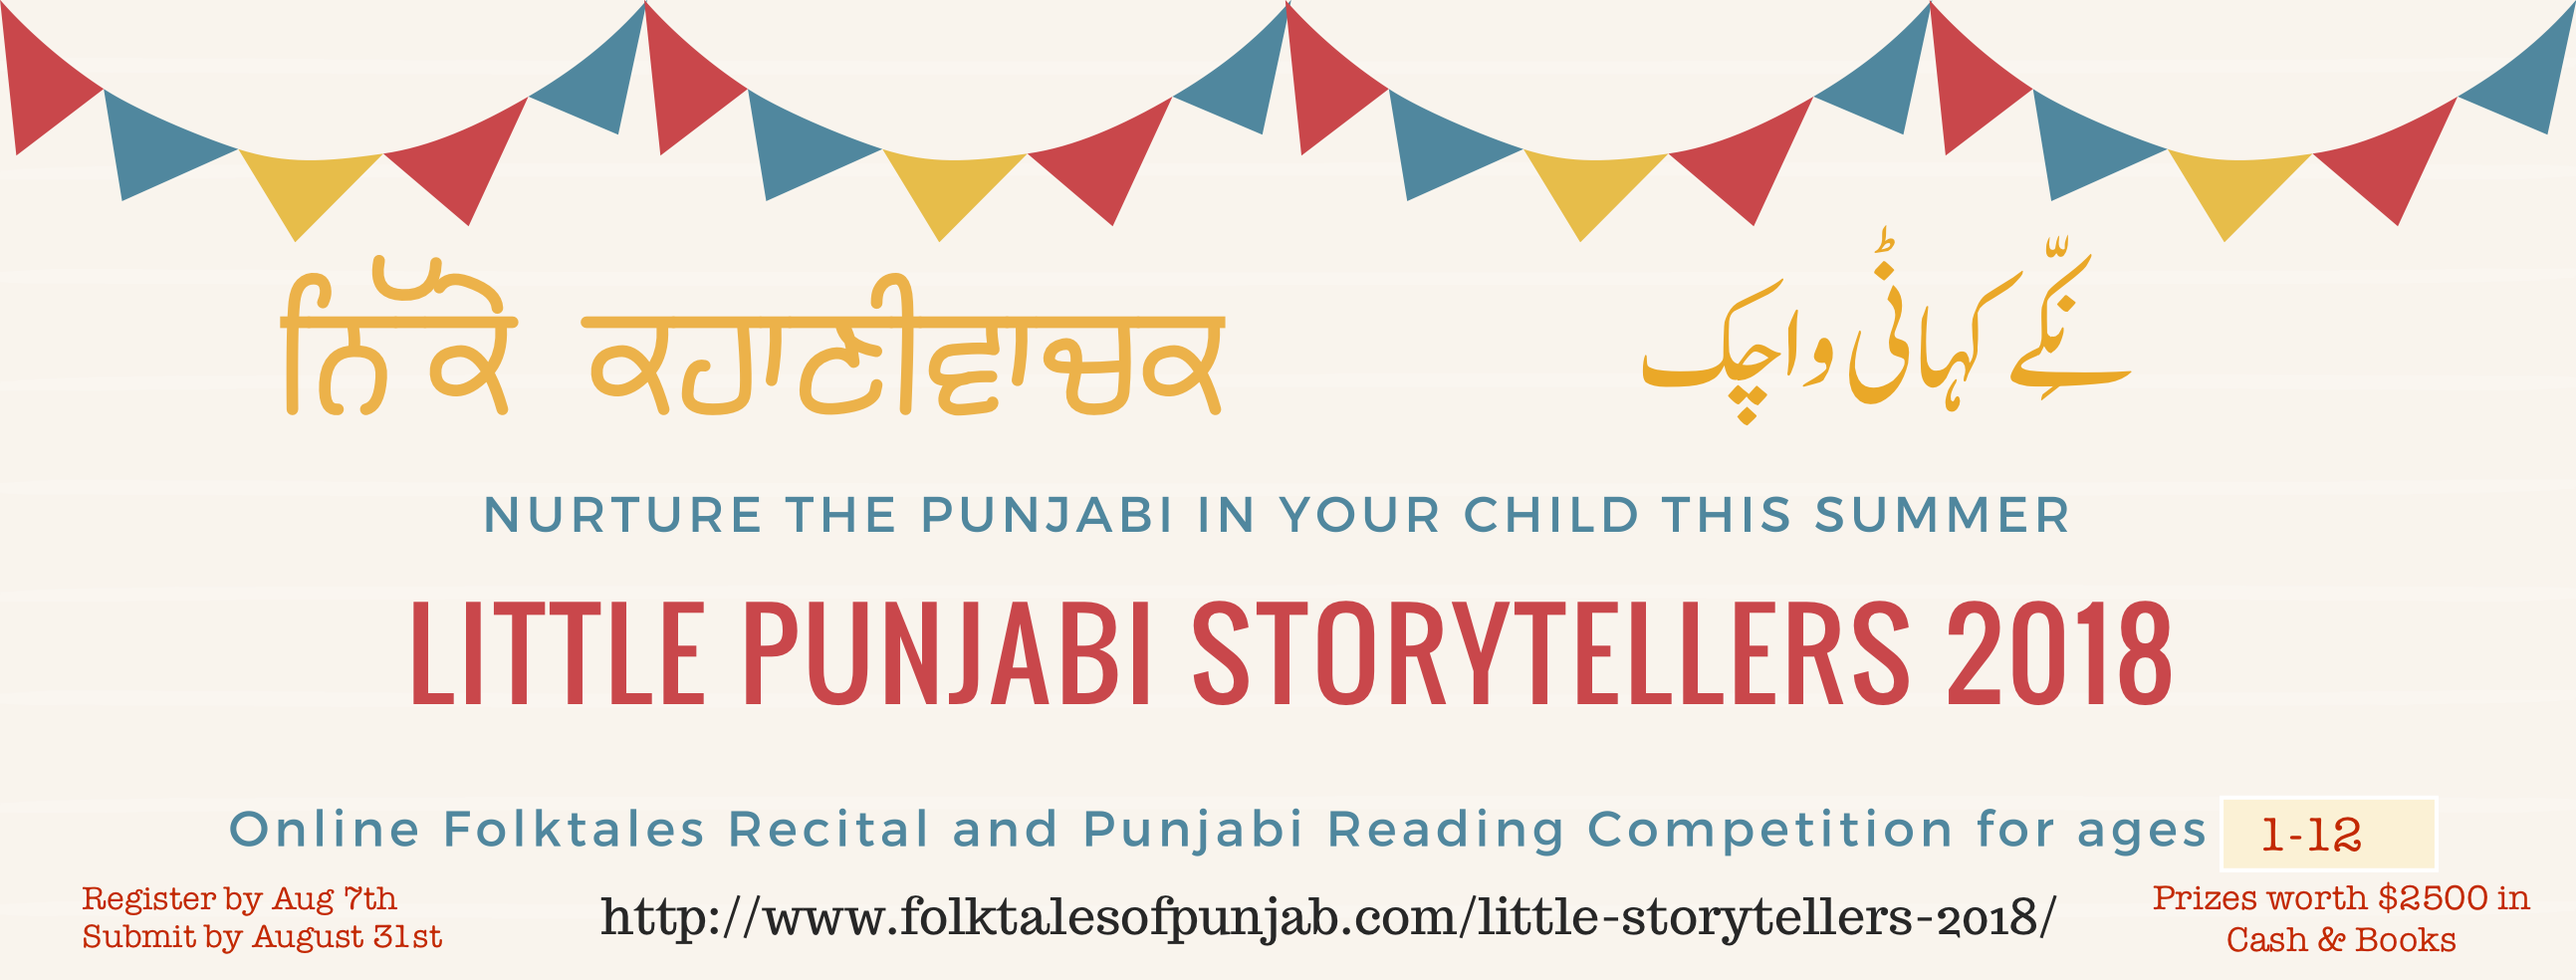 Little Punjabi Storytellers